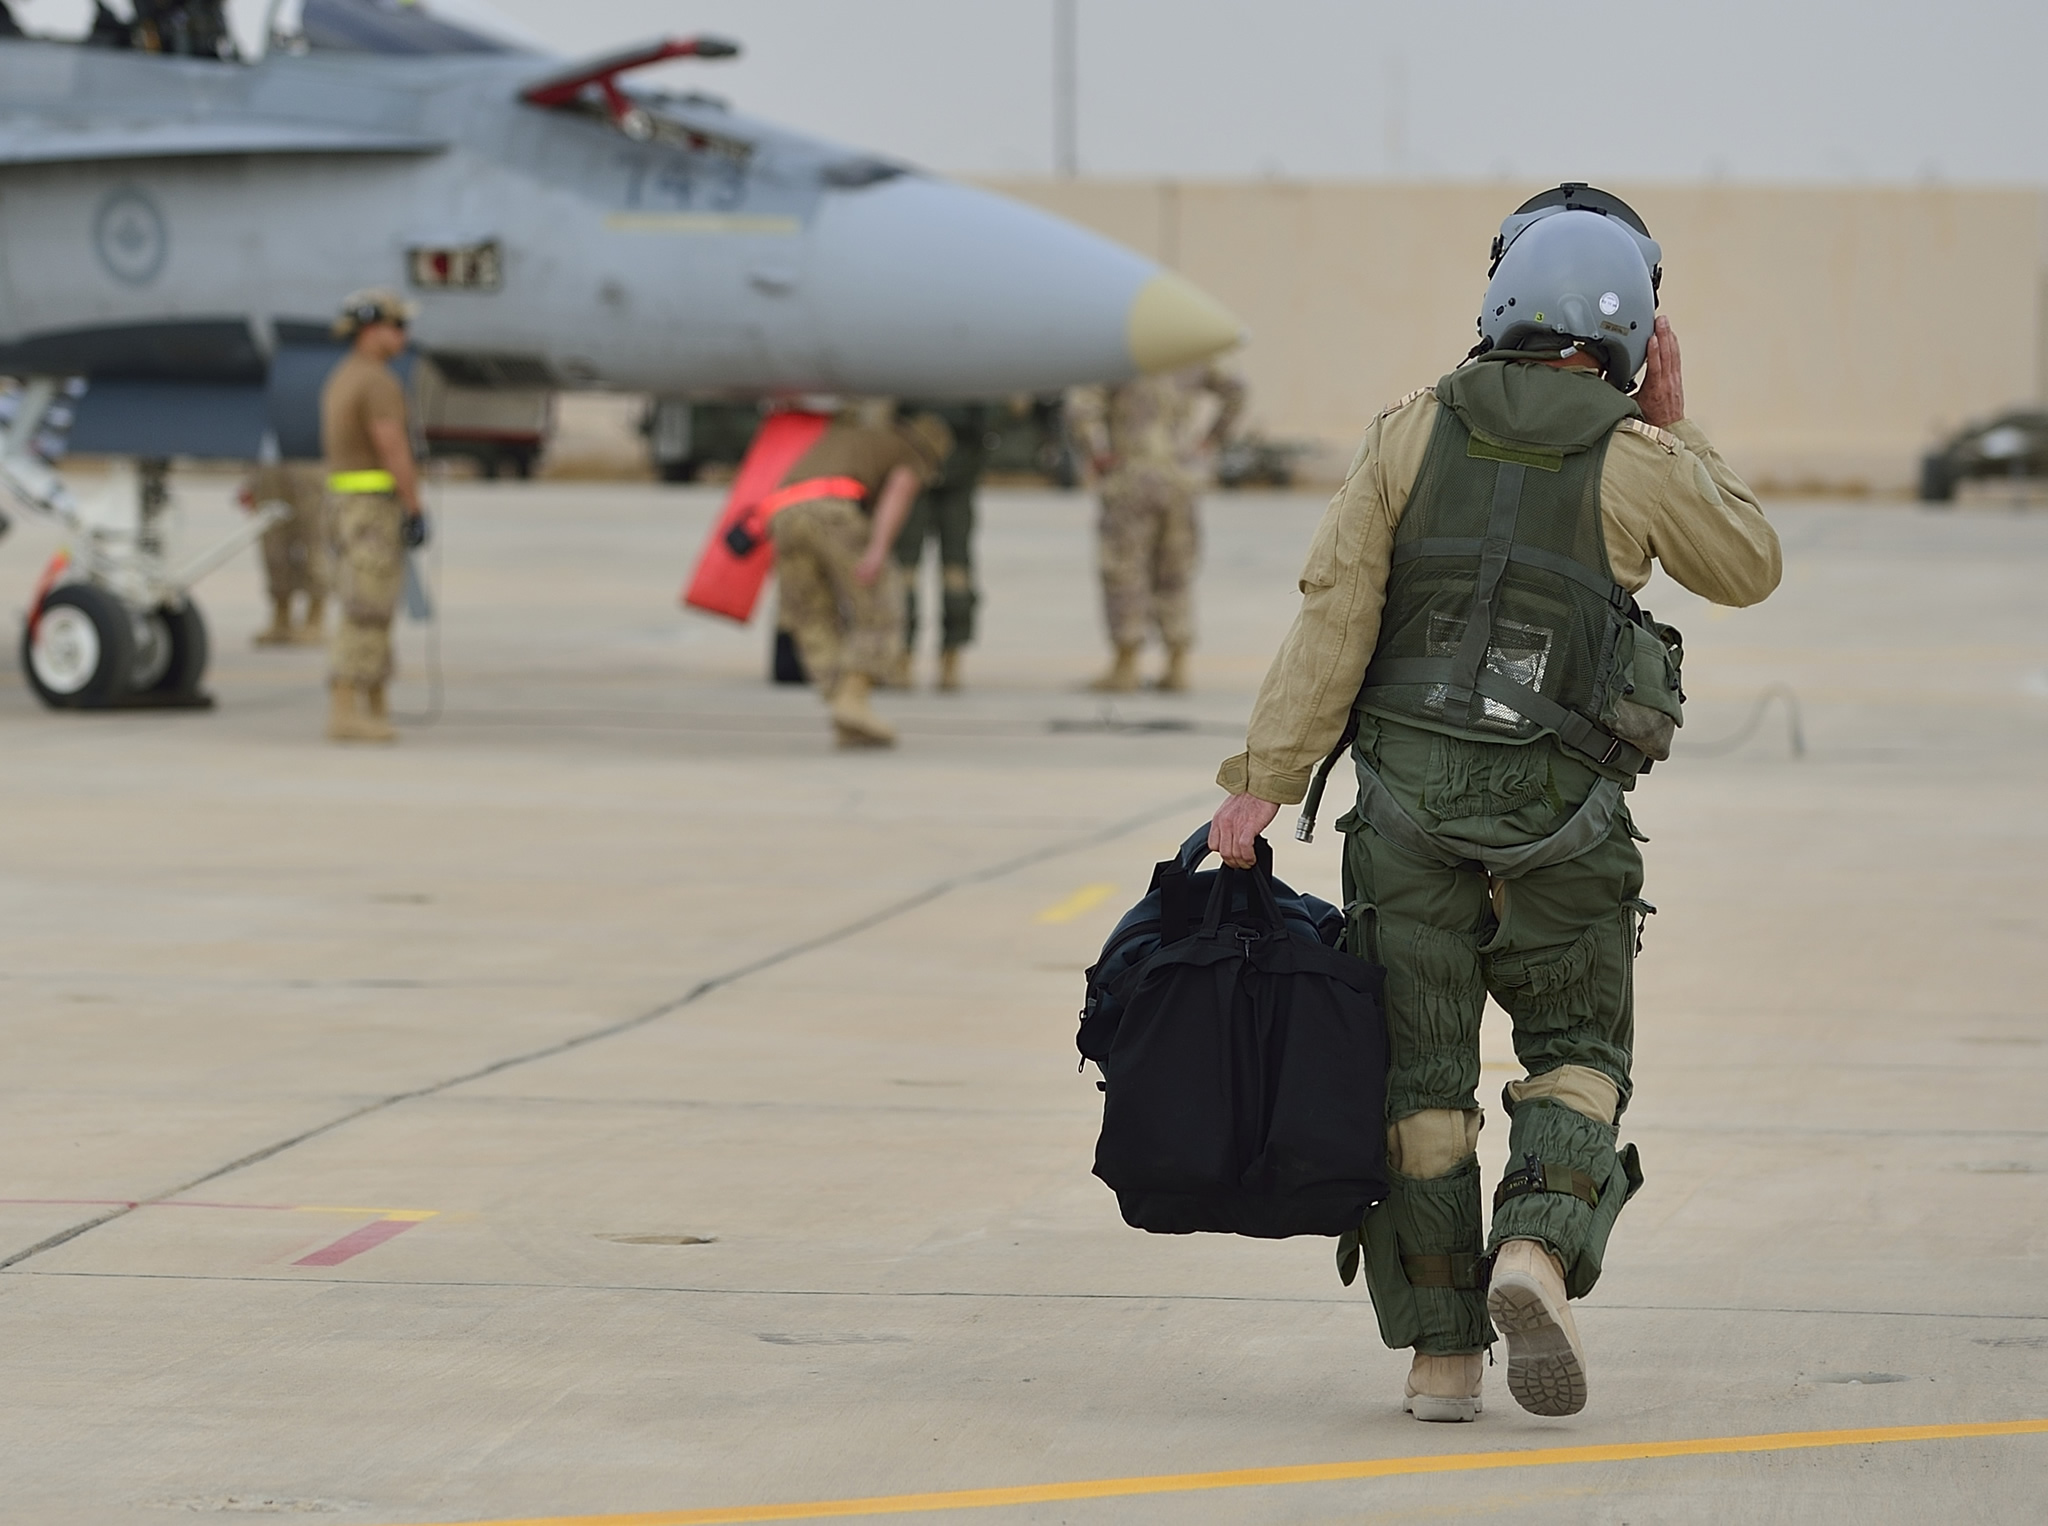 30 October 2014 Kuwait A Royal Canadian Air Force Cf 188 Fighter Pilot